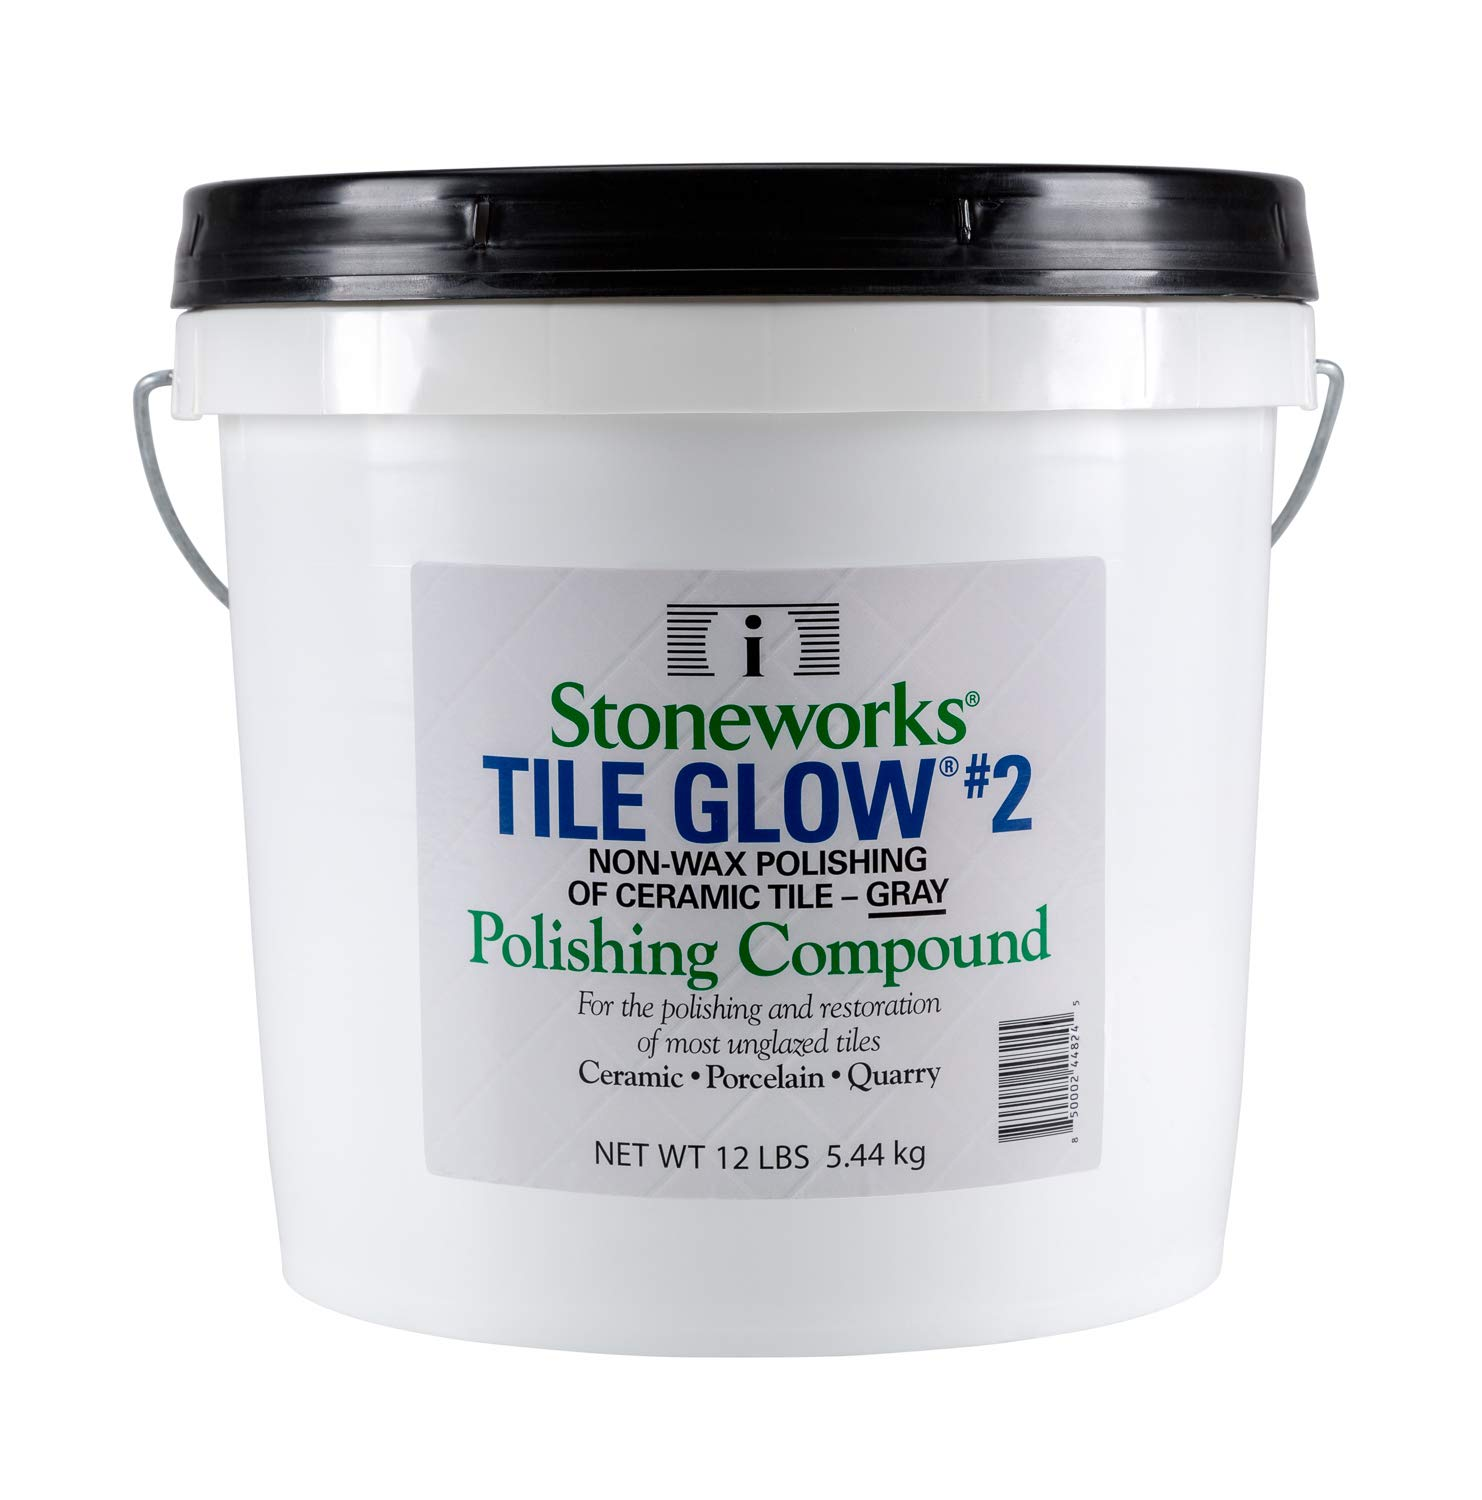 Tile Glow #2 Gray (12 Lb) Natural, Non-Wax Compound for The polishing of Most unglazed Ceramic, Porcelain and Quarry Tiles, which Gives a Long Lasting Finish and Natural Shine to Tiles